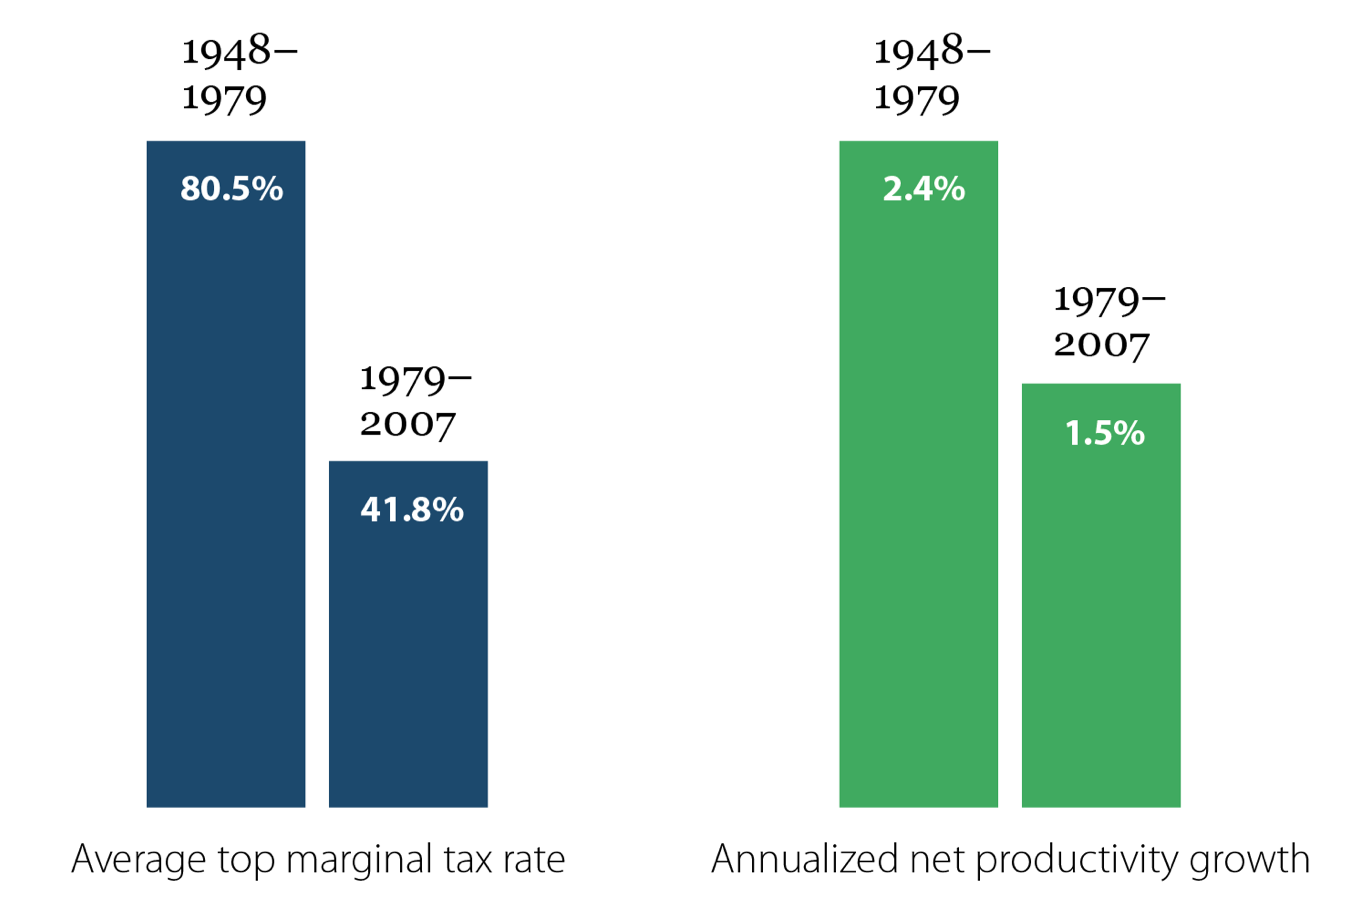 Tax Cuts Didn't Lead to Faster Growth: Average top marginal tax rate and annualized productivity growth, 1948–1979 and 1979–2007